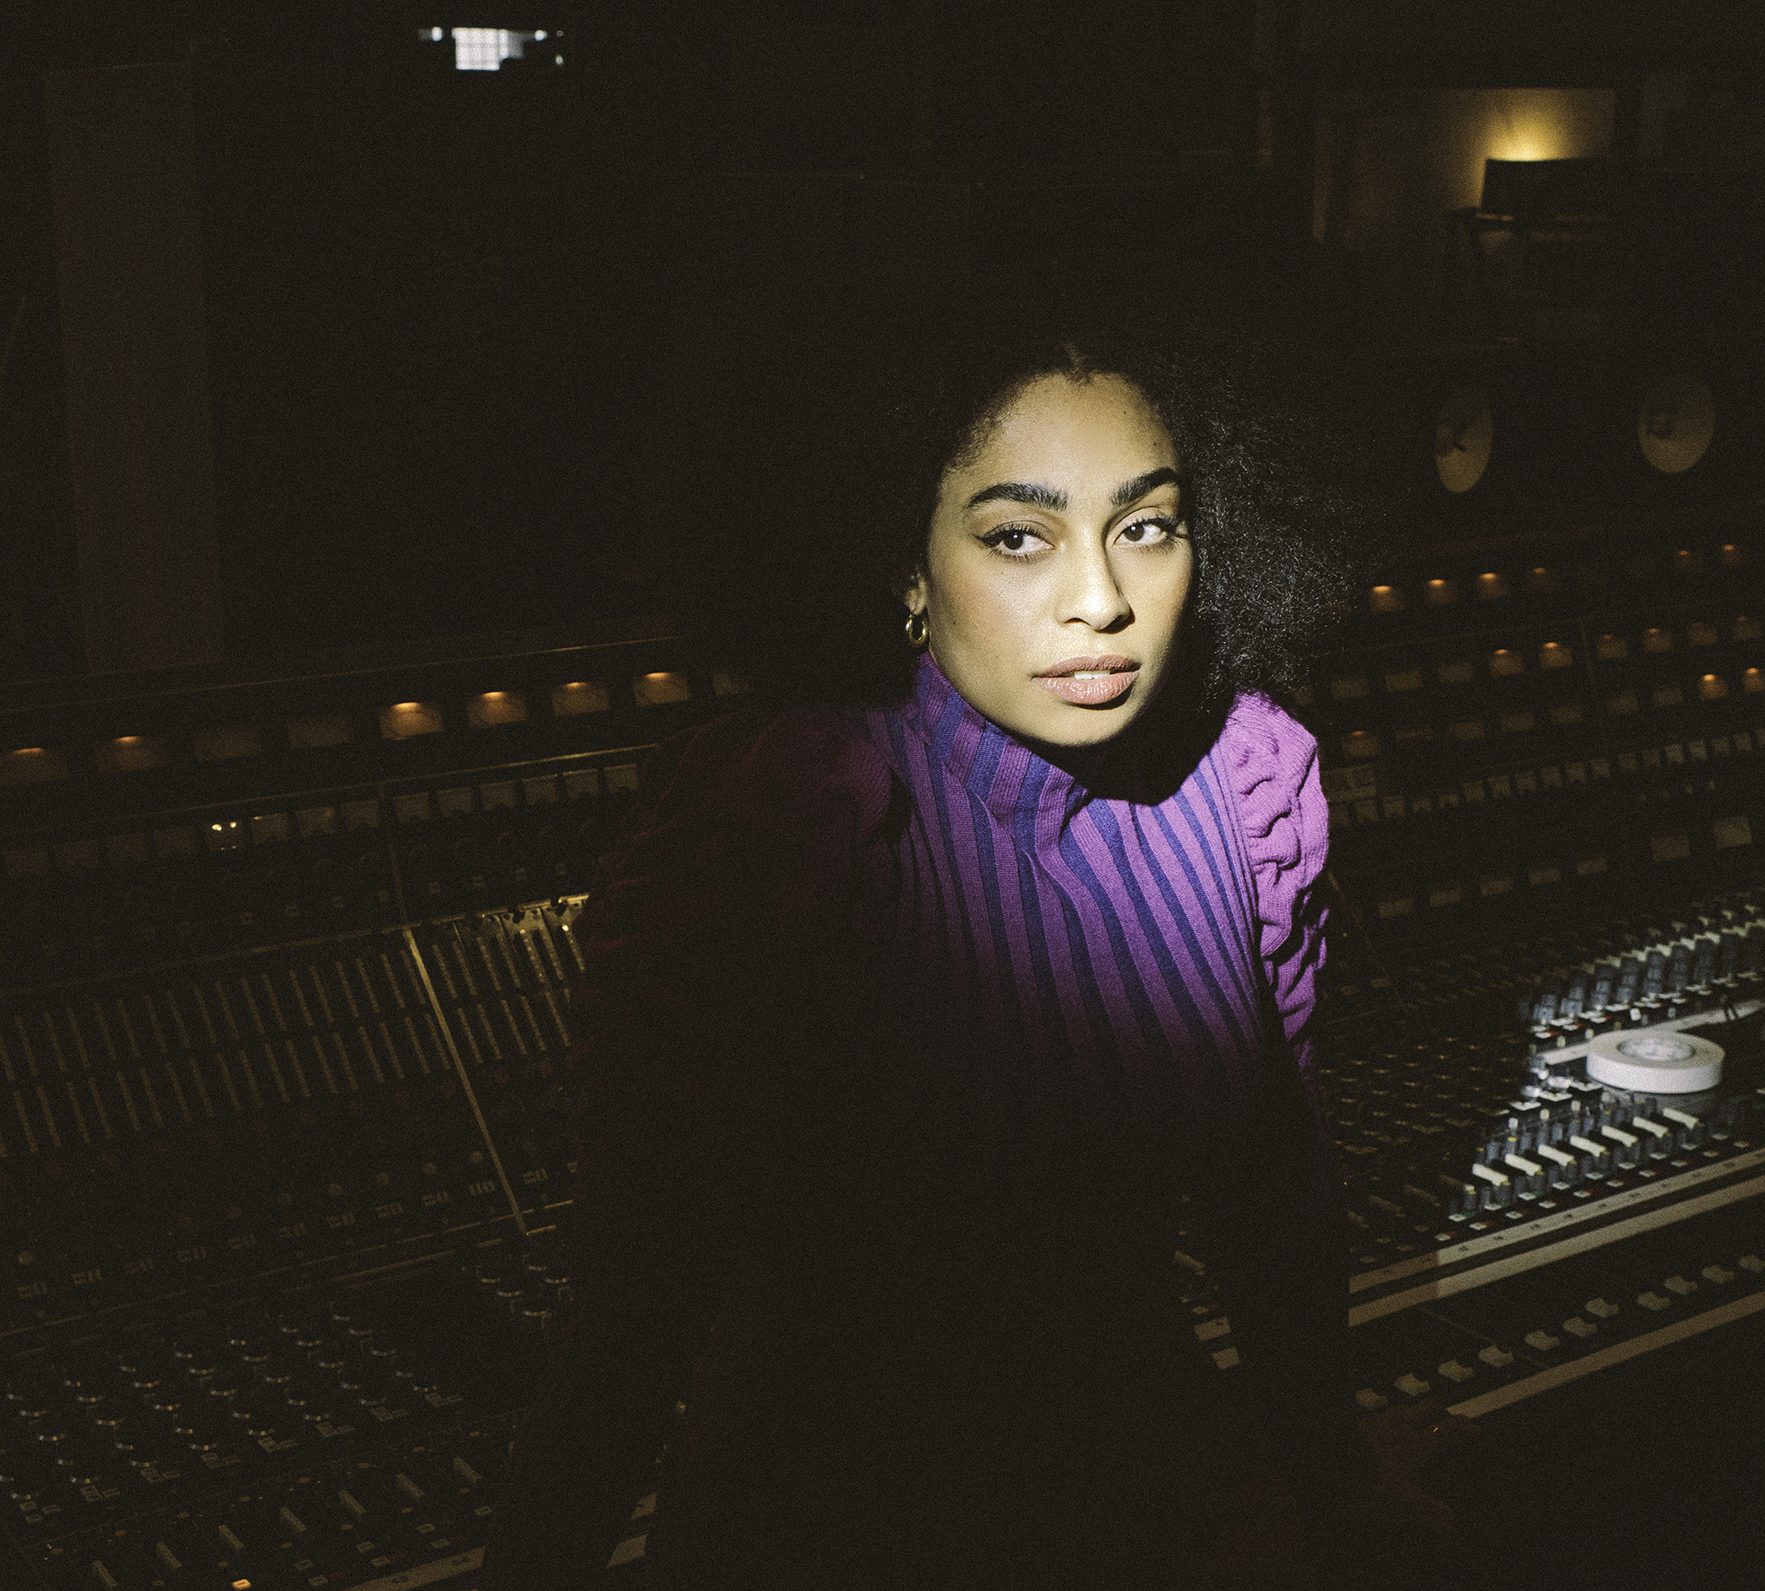 CELESTE announces debut album 'Not Your Muse' - Out 29th January 2